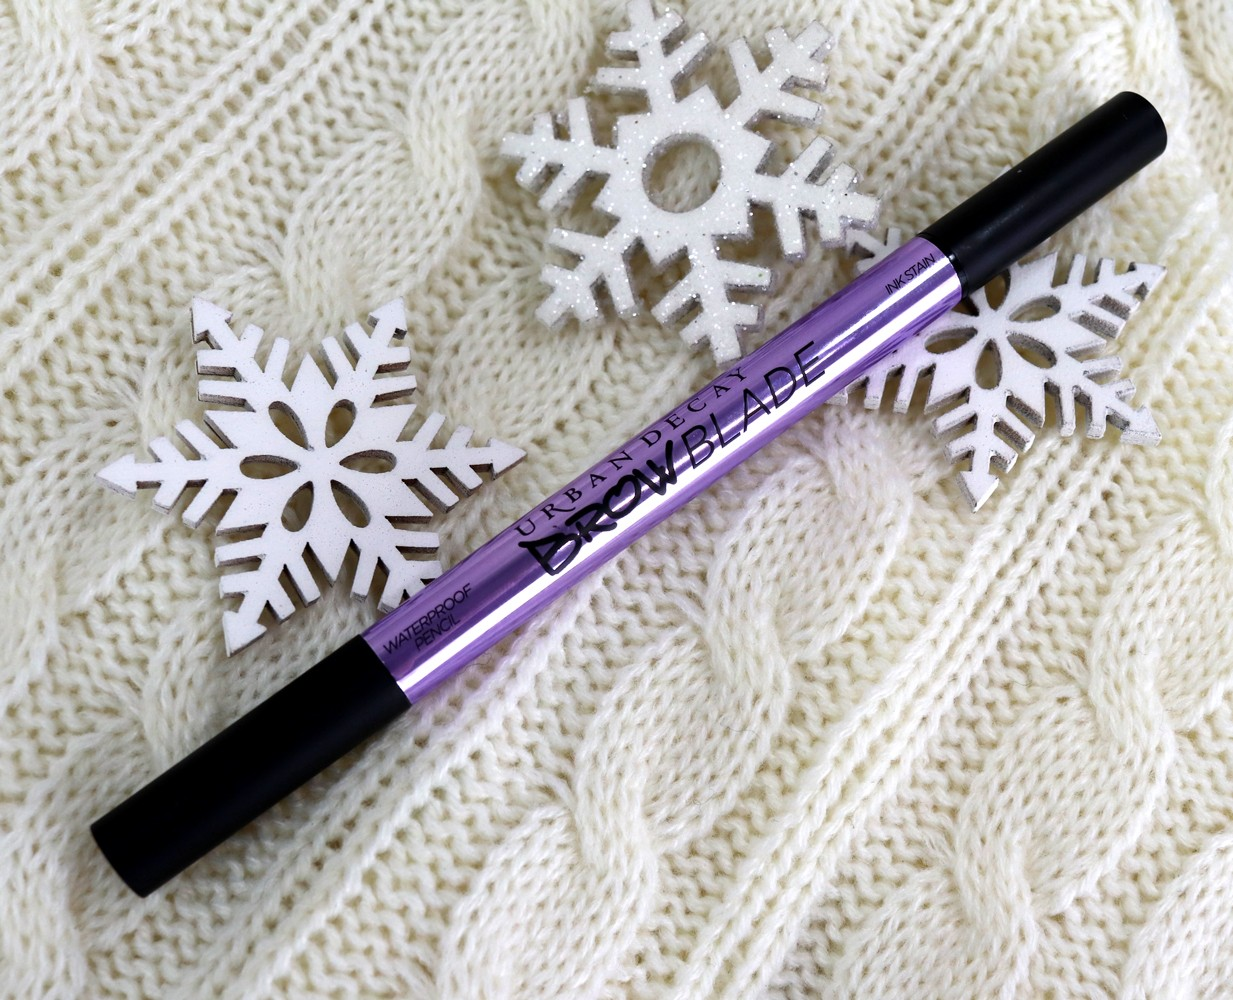 Urban Decay Brow Blade Review and Swatches